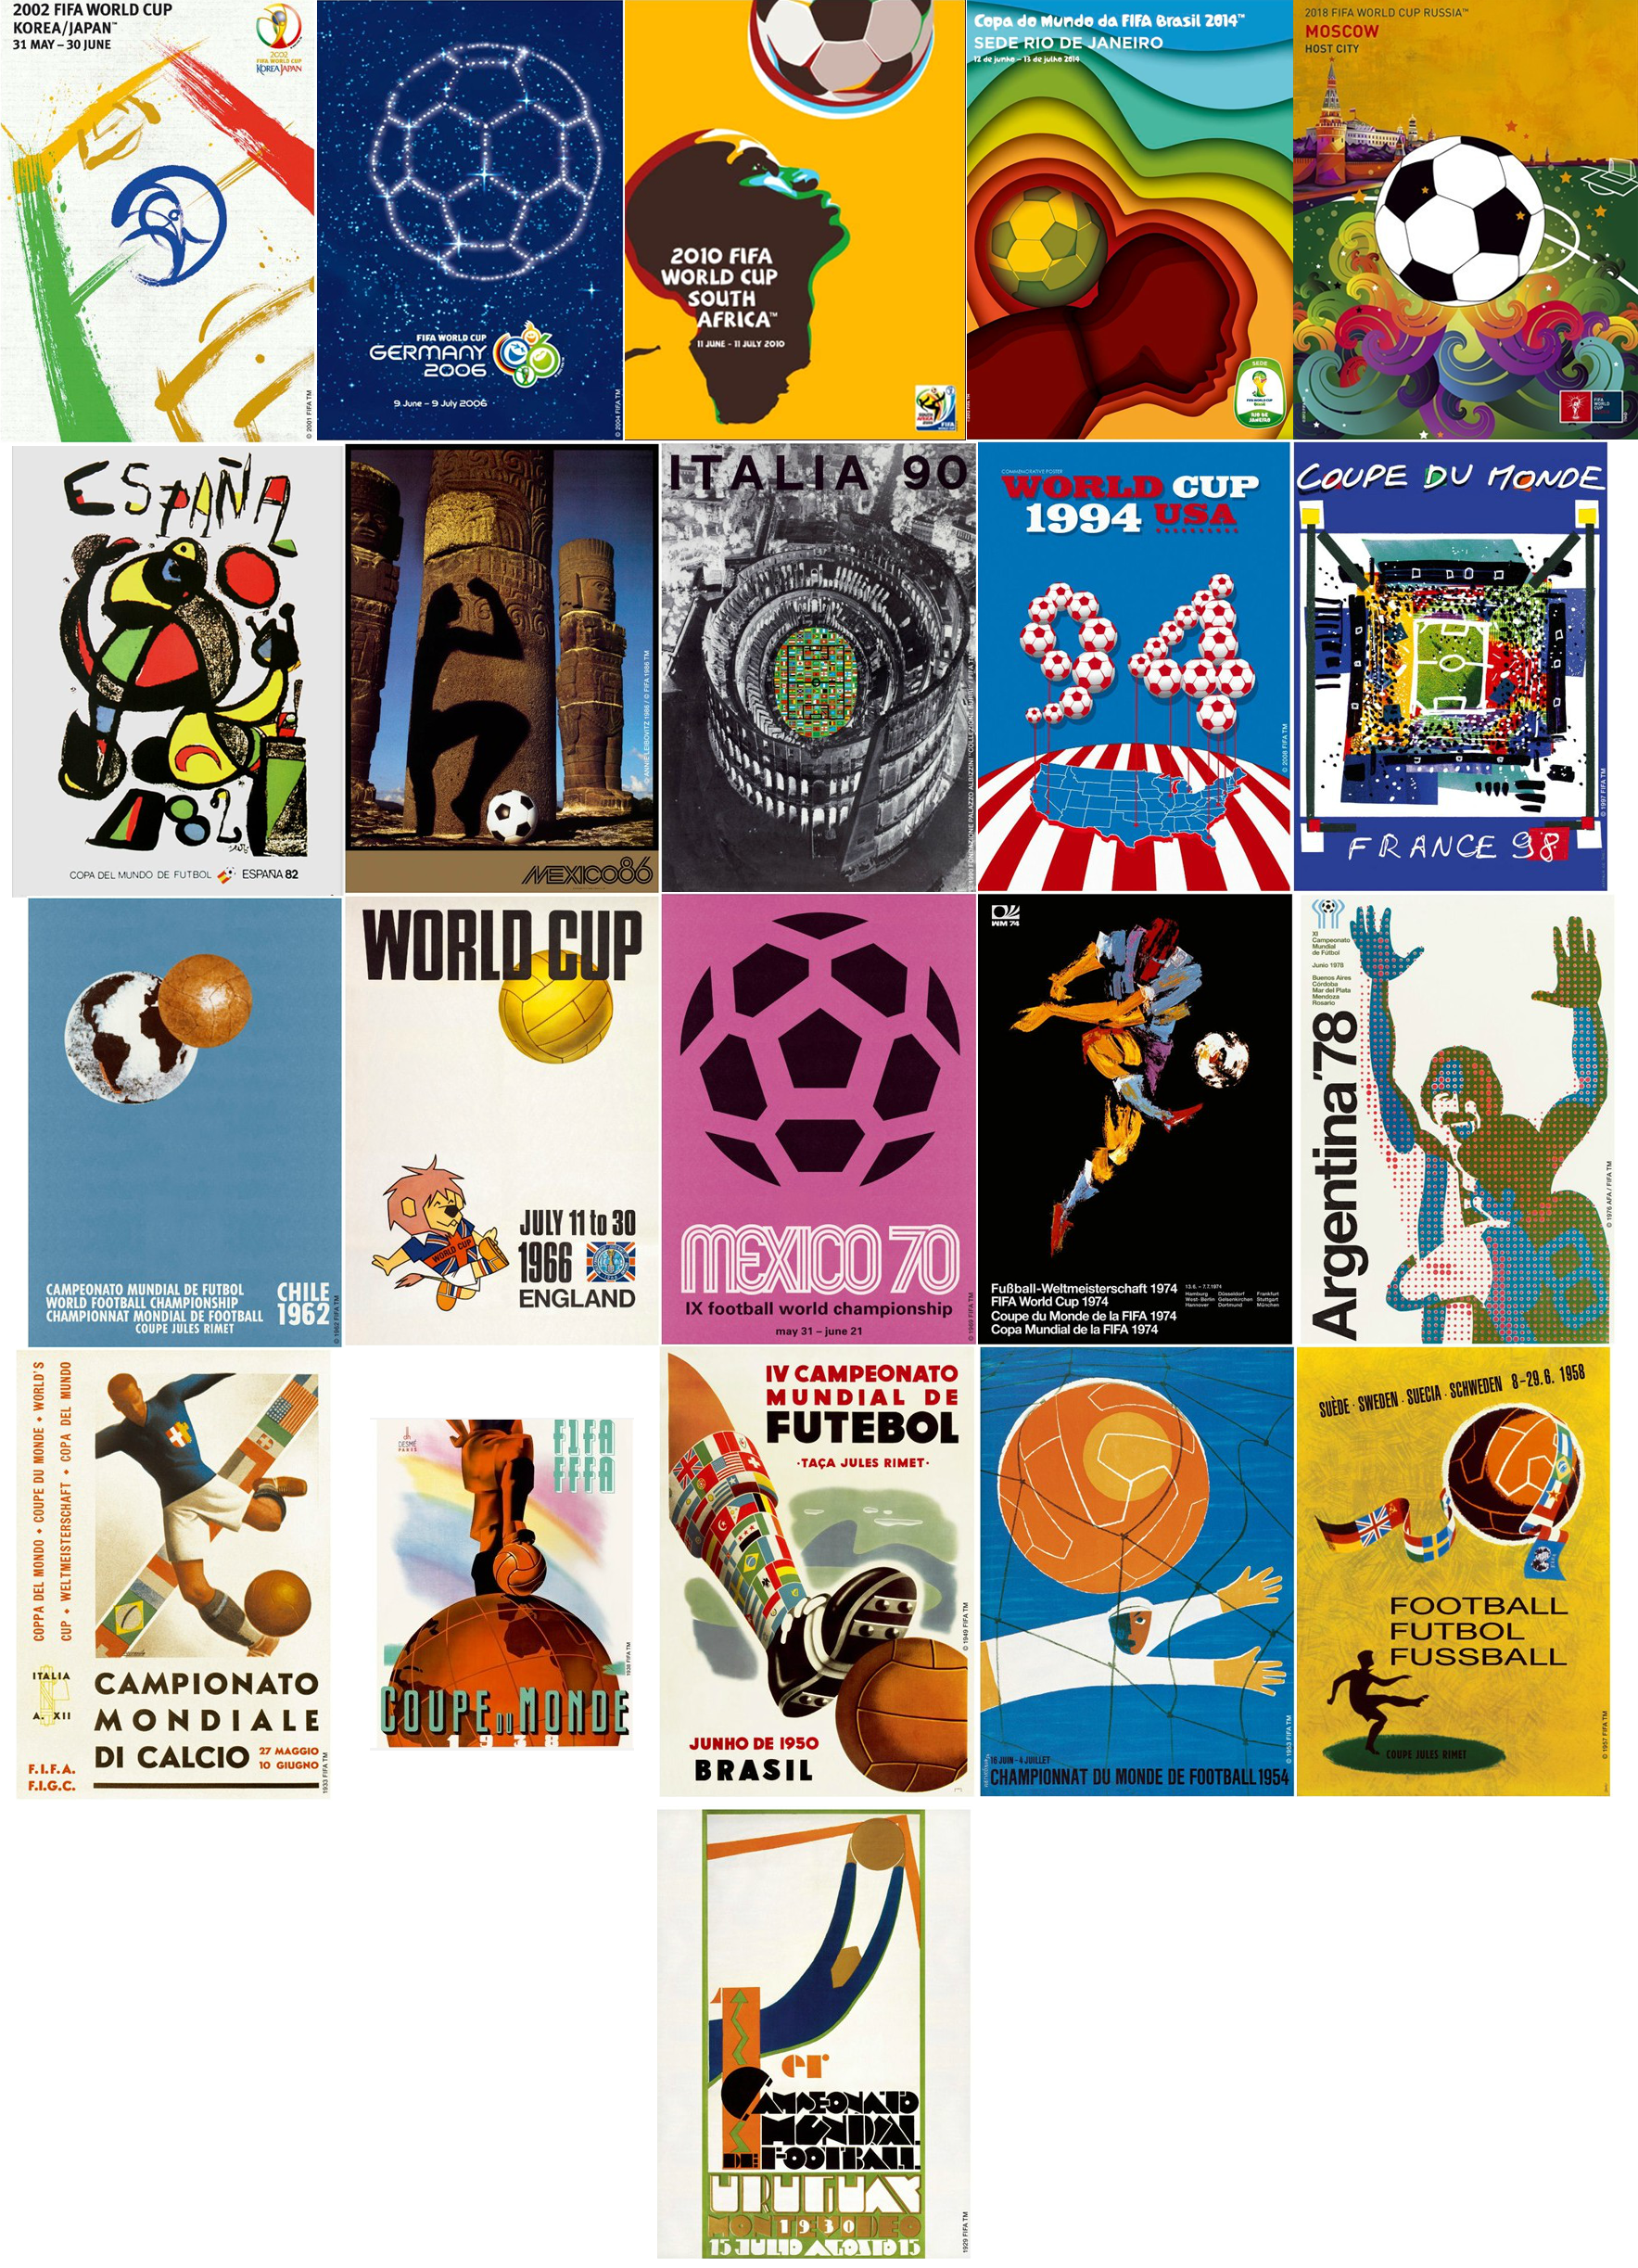 Pin By Mike Bantug On Football Futbol Fussball Calcio Soccer World Cup Soccer Poster Soccer World